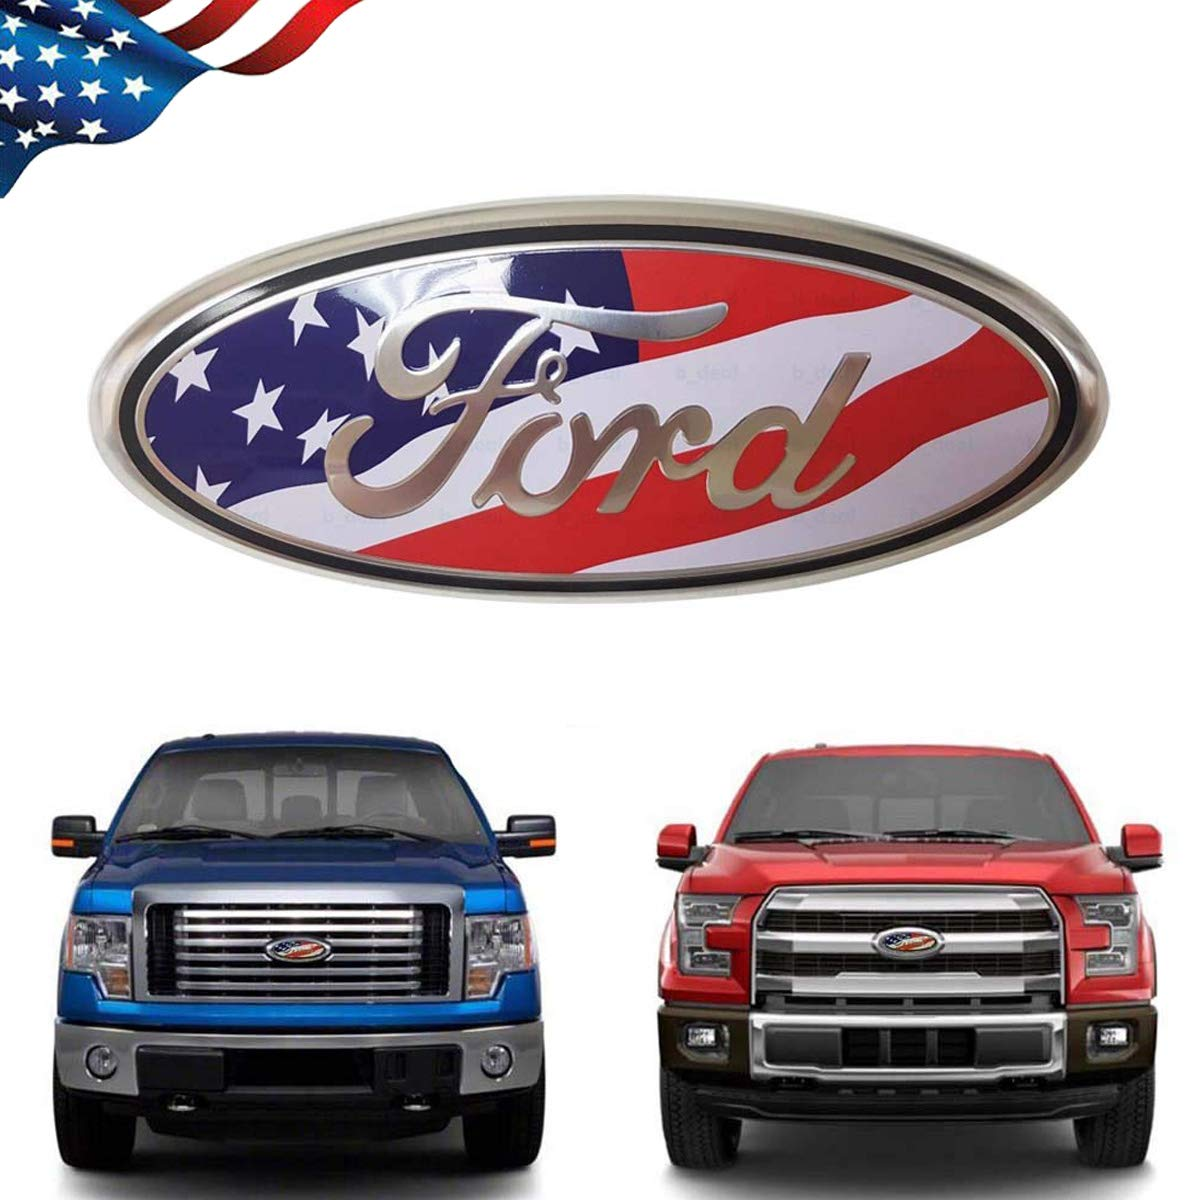 99 Carpro F150 Front Grille Tailgate Emblem for Ford, 9 inch American Flag Oval Decal Badge Nameplate for FORD 2004-2014 F250 F350, 11-14 Edge, 11-16 Explorer, 06-11 Ranger (US Flag Emblem) by 99 Carpro